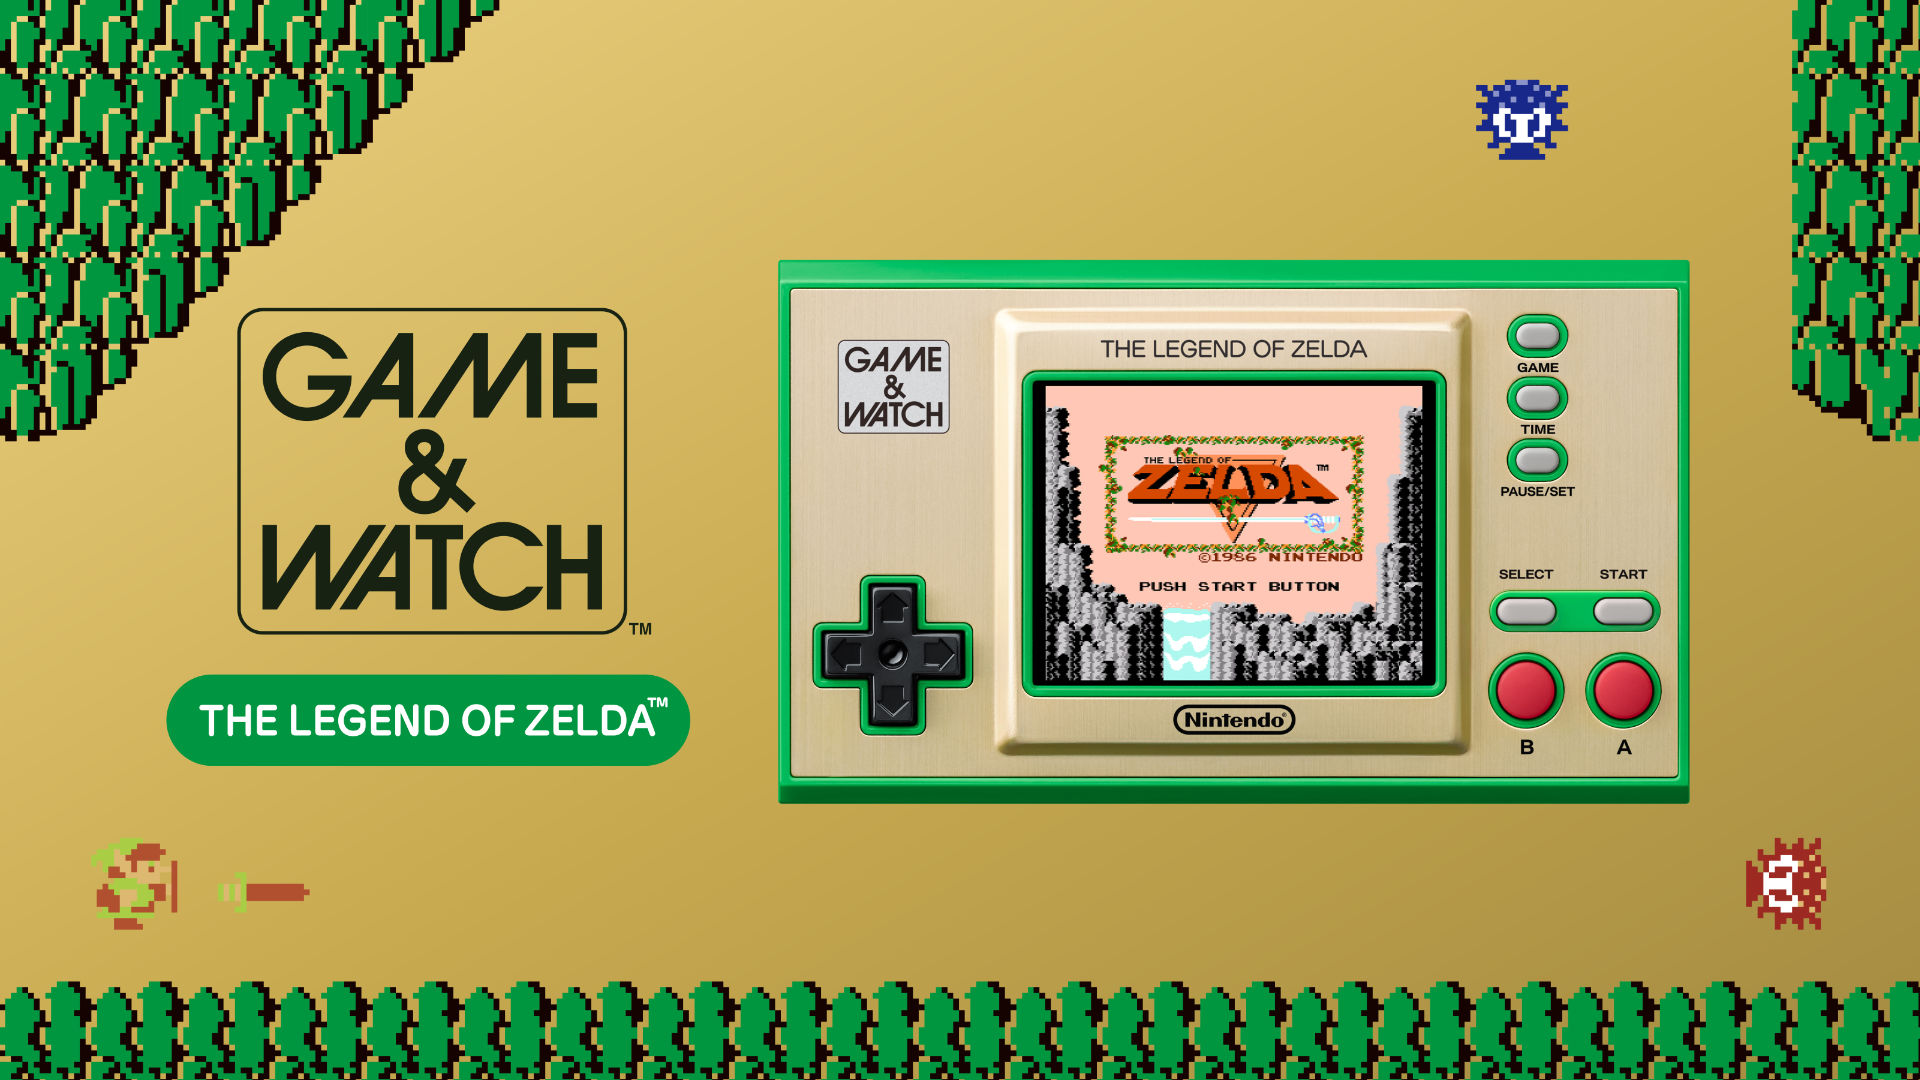 Game & Watch: The Legend of Zelda graphic with the handheld device in an NES Zelda setting.